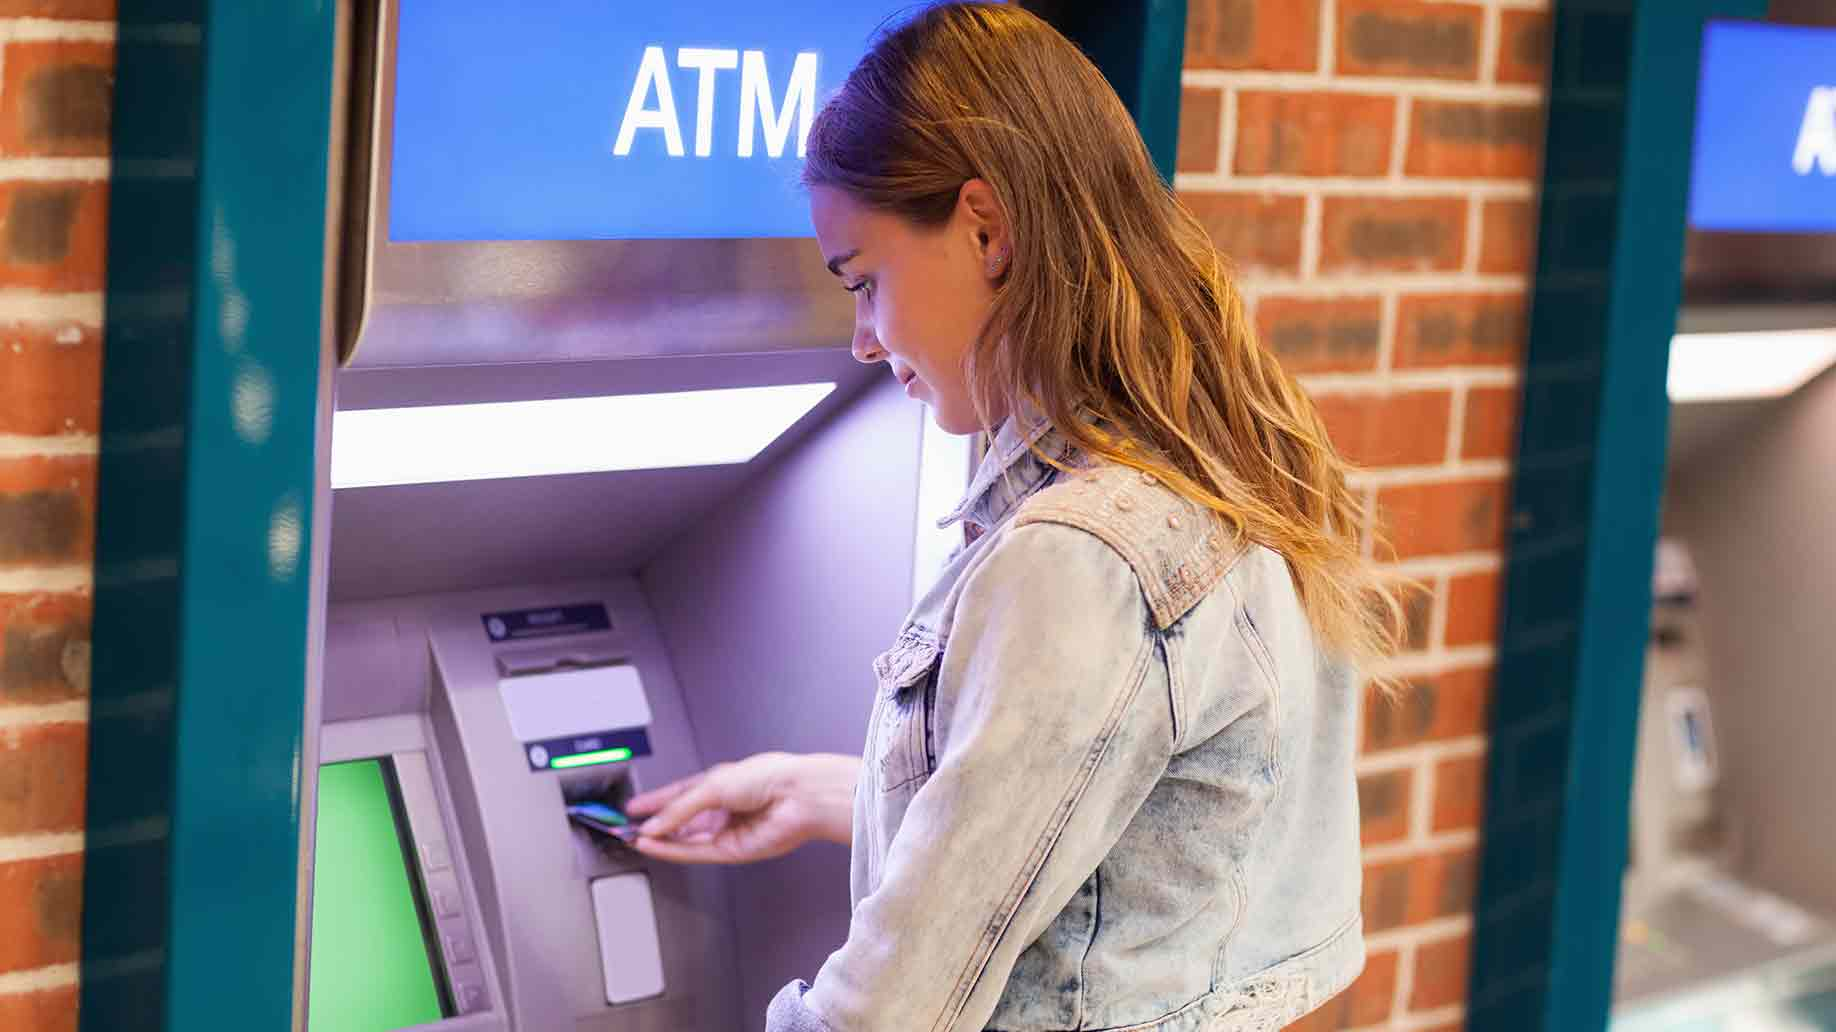 brunette student withdrawing cash at atm machine